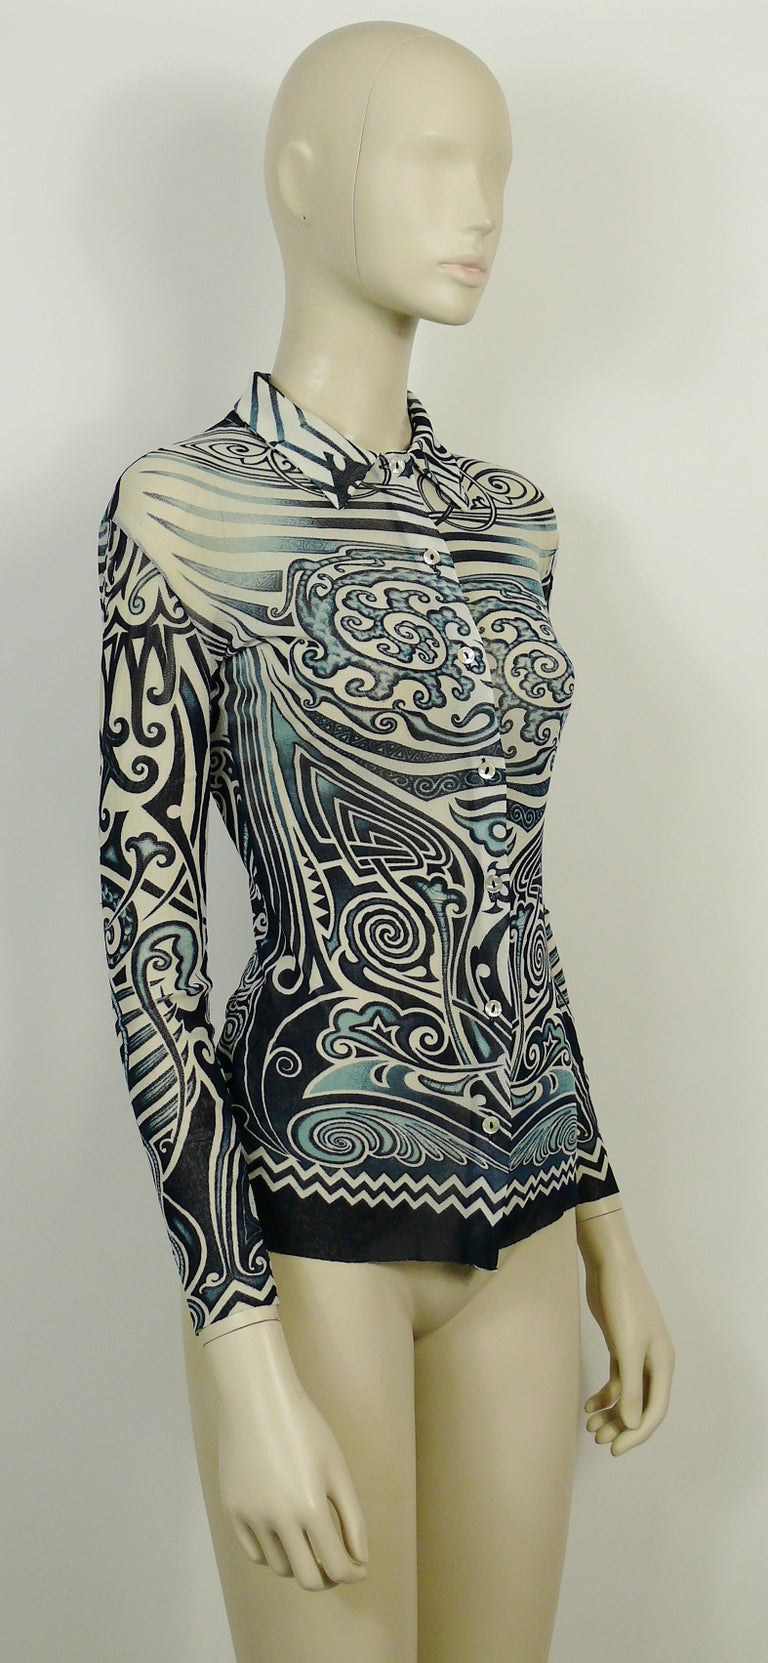 JEAN PAUL GAULTIER vintage FUZZI sheer mesh shirt featuring a tribal tattoo print in shades of blue and white.  Label reads JEAN PAUL GAULTIER MAILLE. MADE IN ITALY.  Size label reads : S. Please refer to measurements.  Composition label reads :